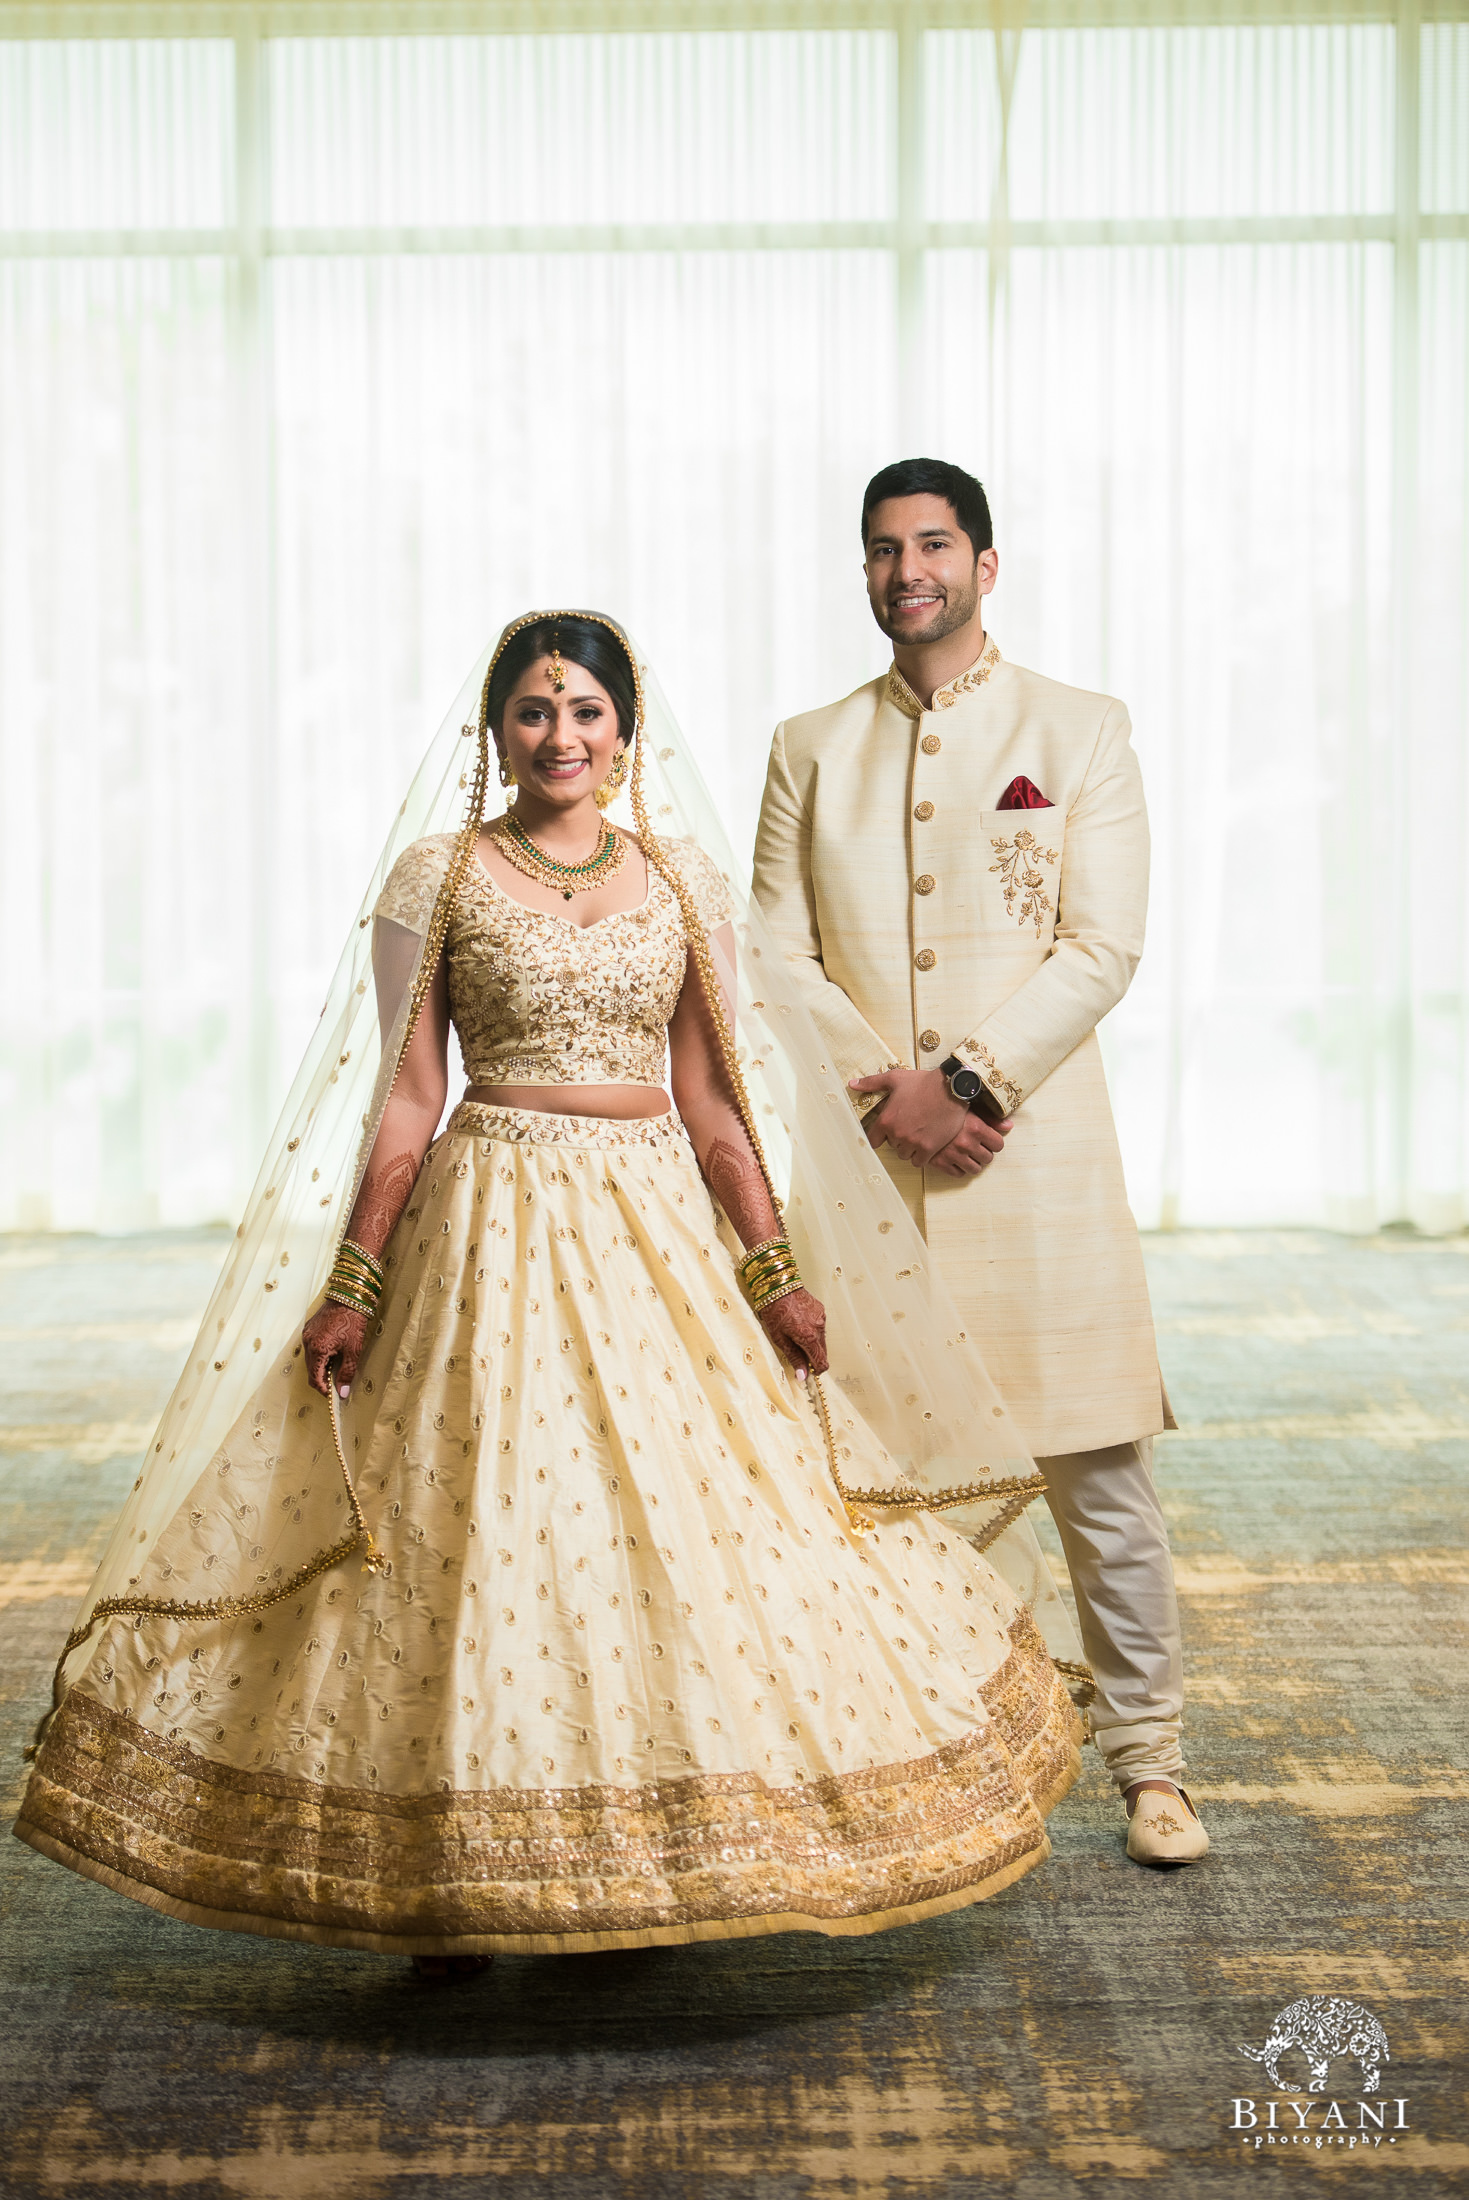 bride and groom portraits dressed in traditional Indian ceremony dress